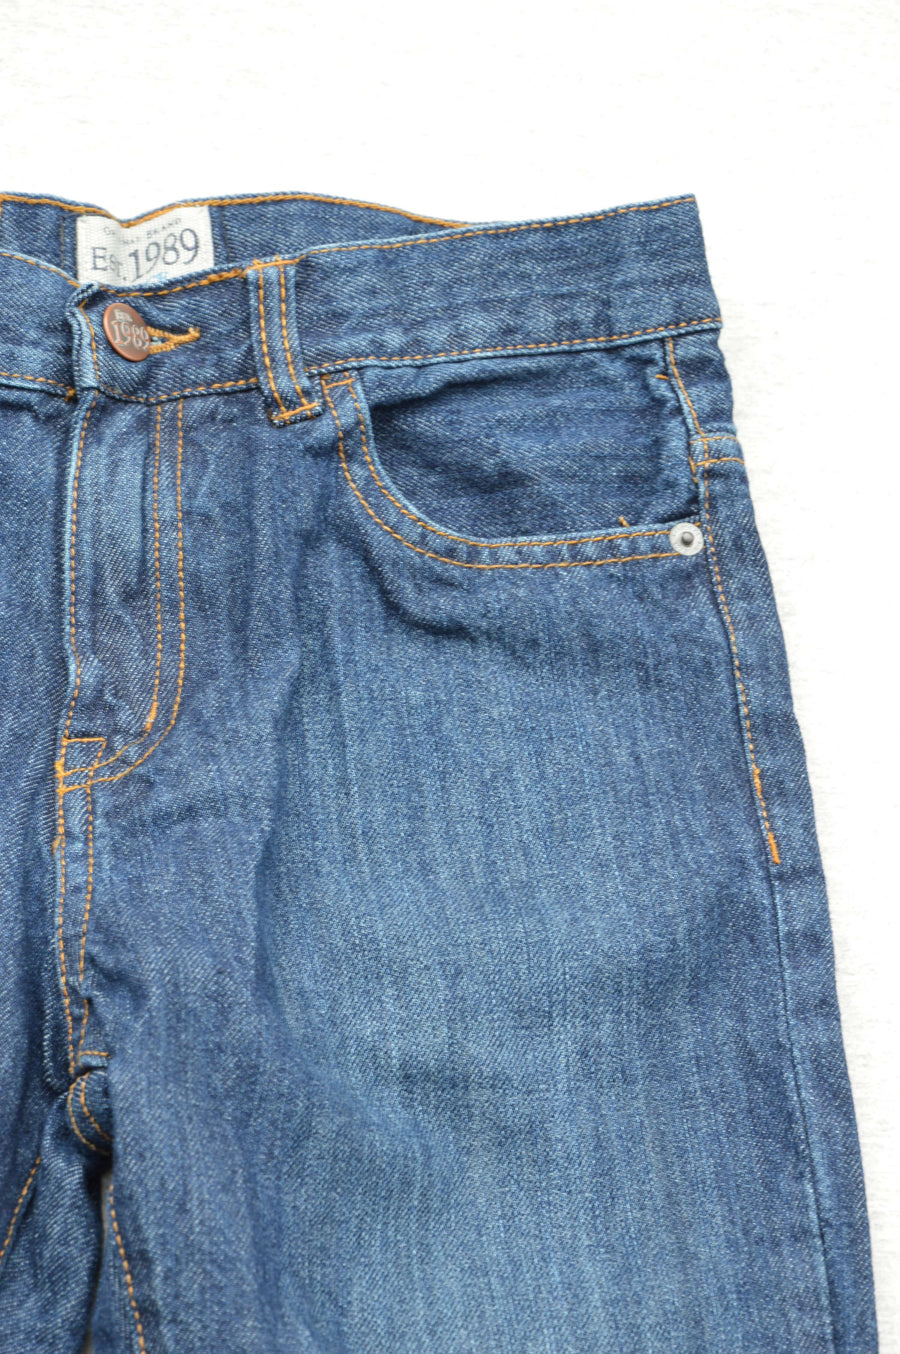 Place - nearly new - mid-blue straight leg jeans, size 12